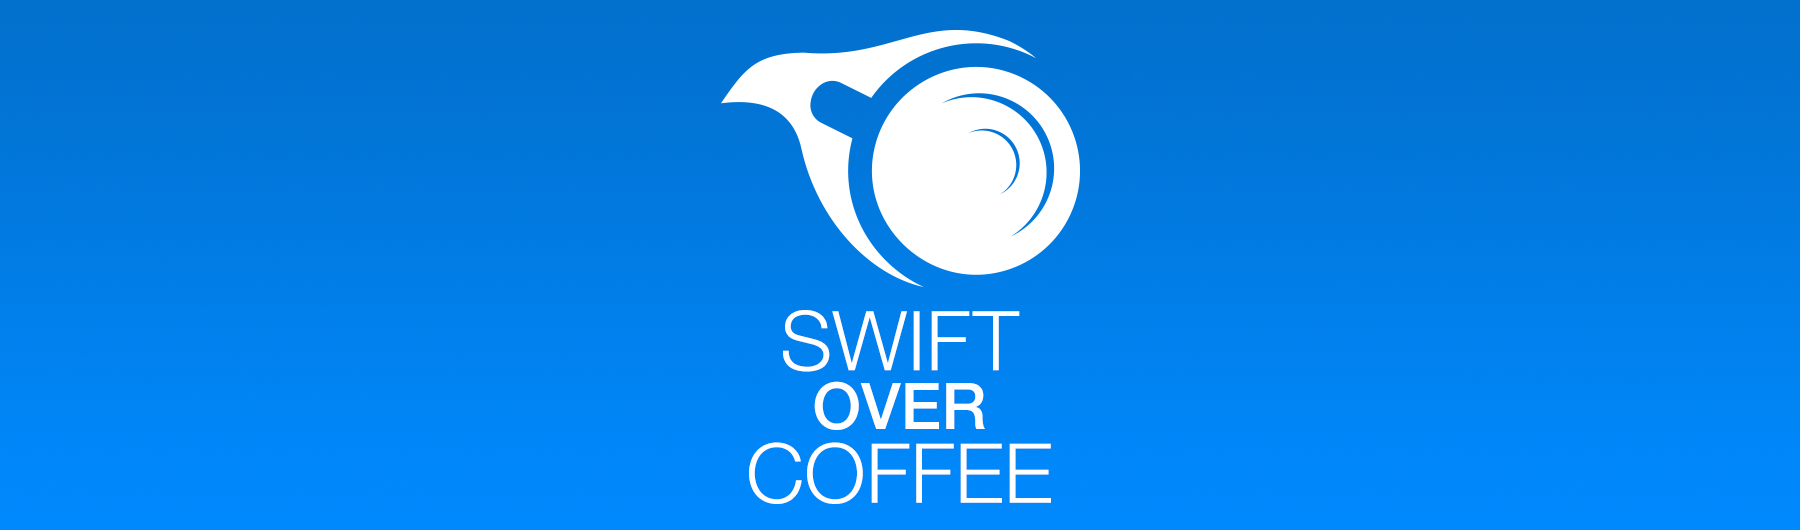 Swift over Coffee Live at AltConf 2019